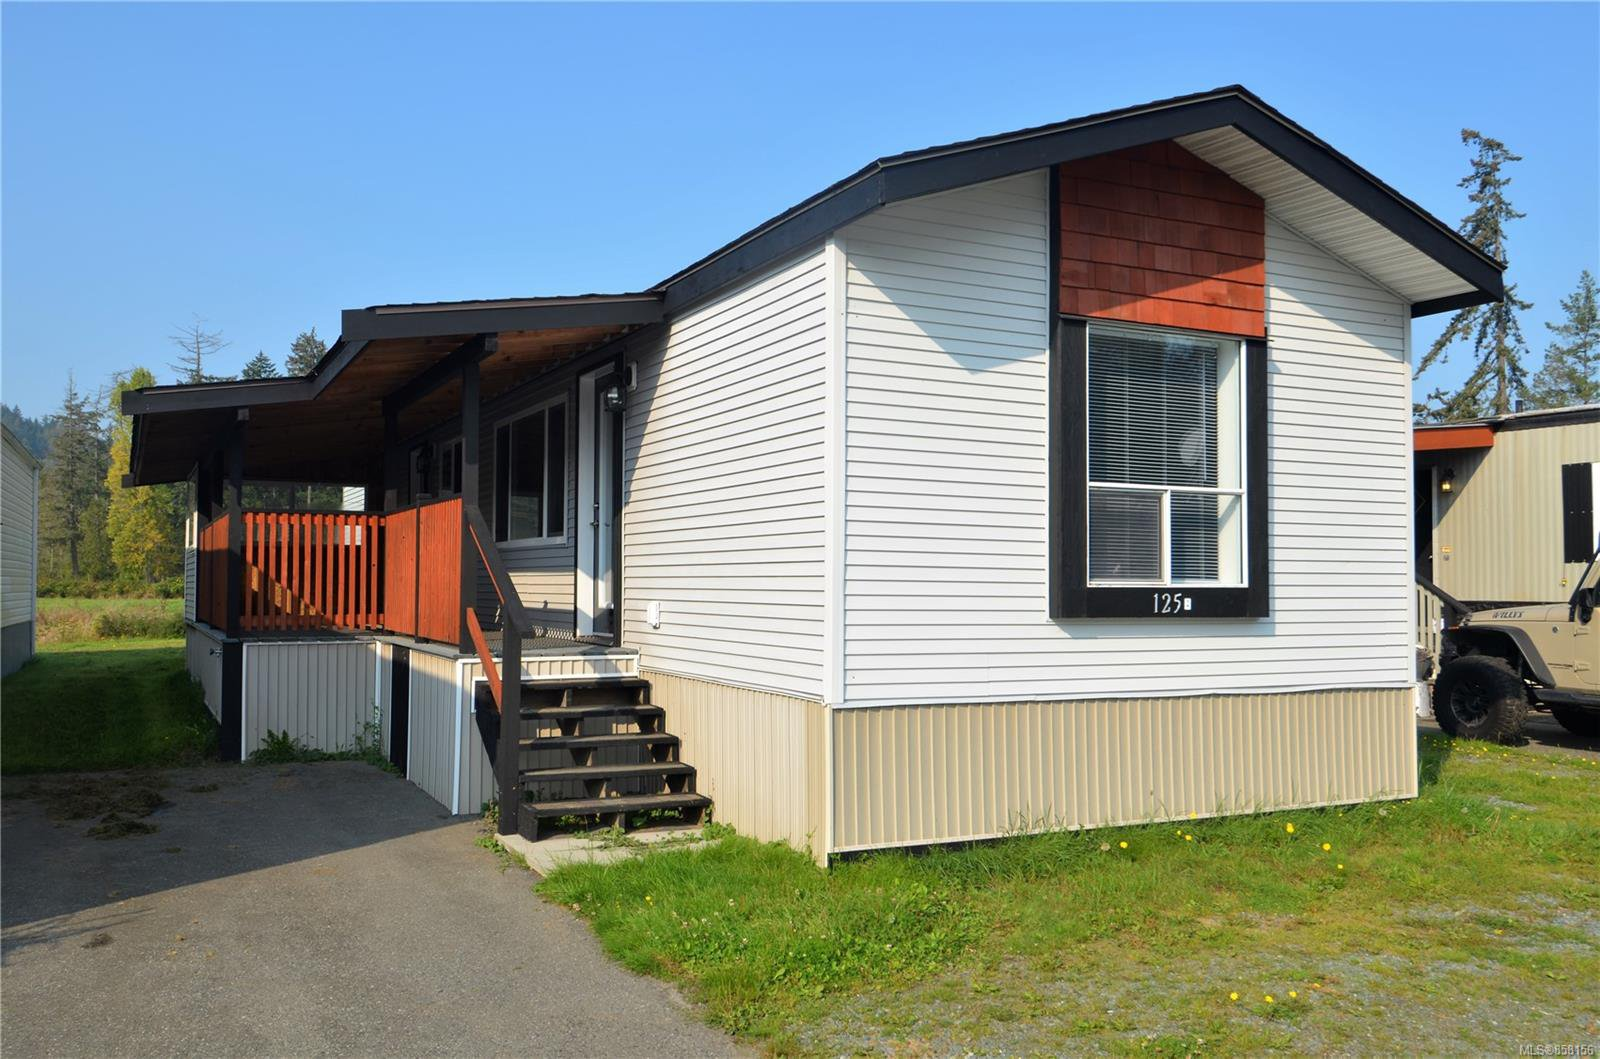 Main Photo: 125A 1753 Cecil St in : Du Crofton Manufactured Home for sale (Duncan)  : MLS®# 858156